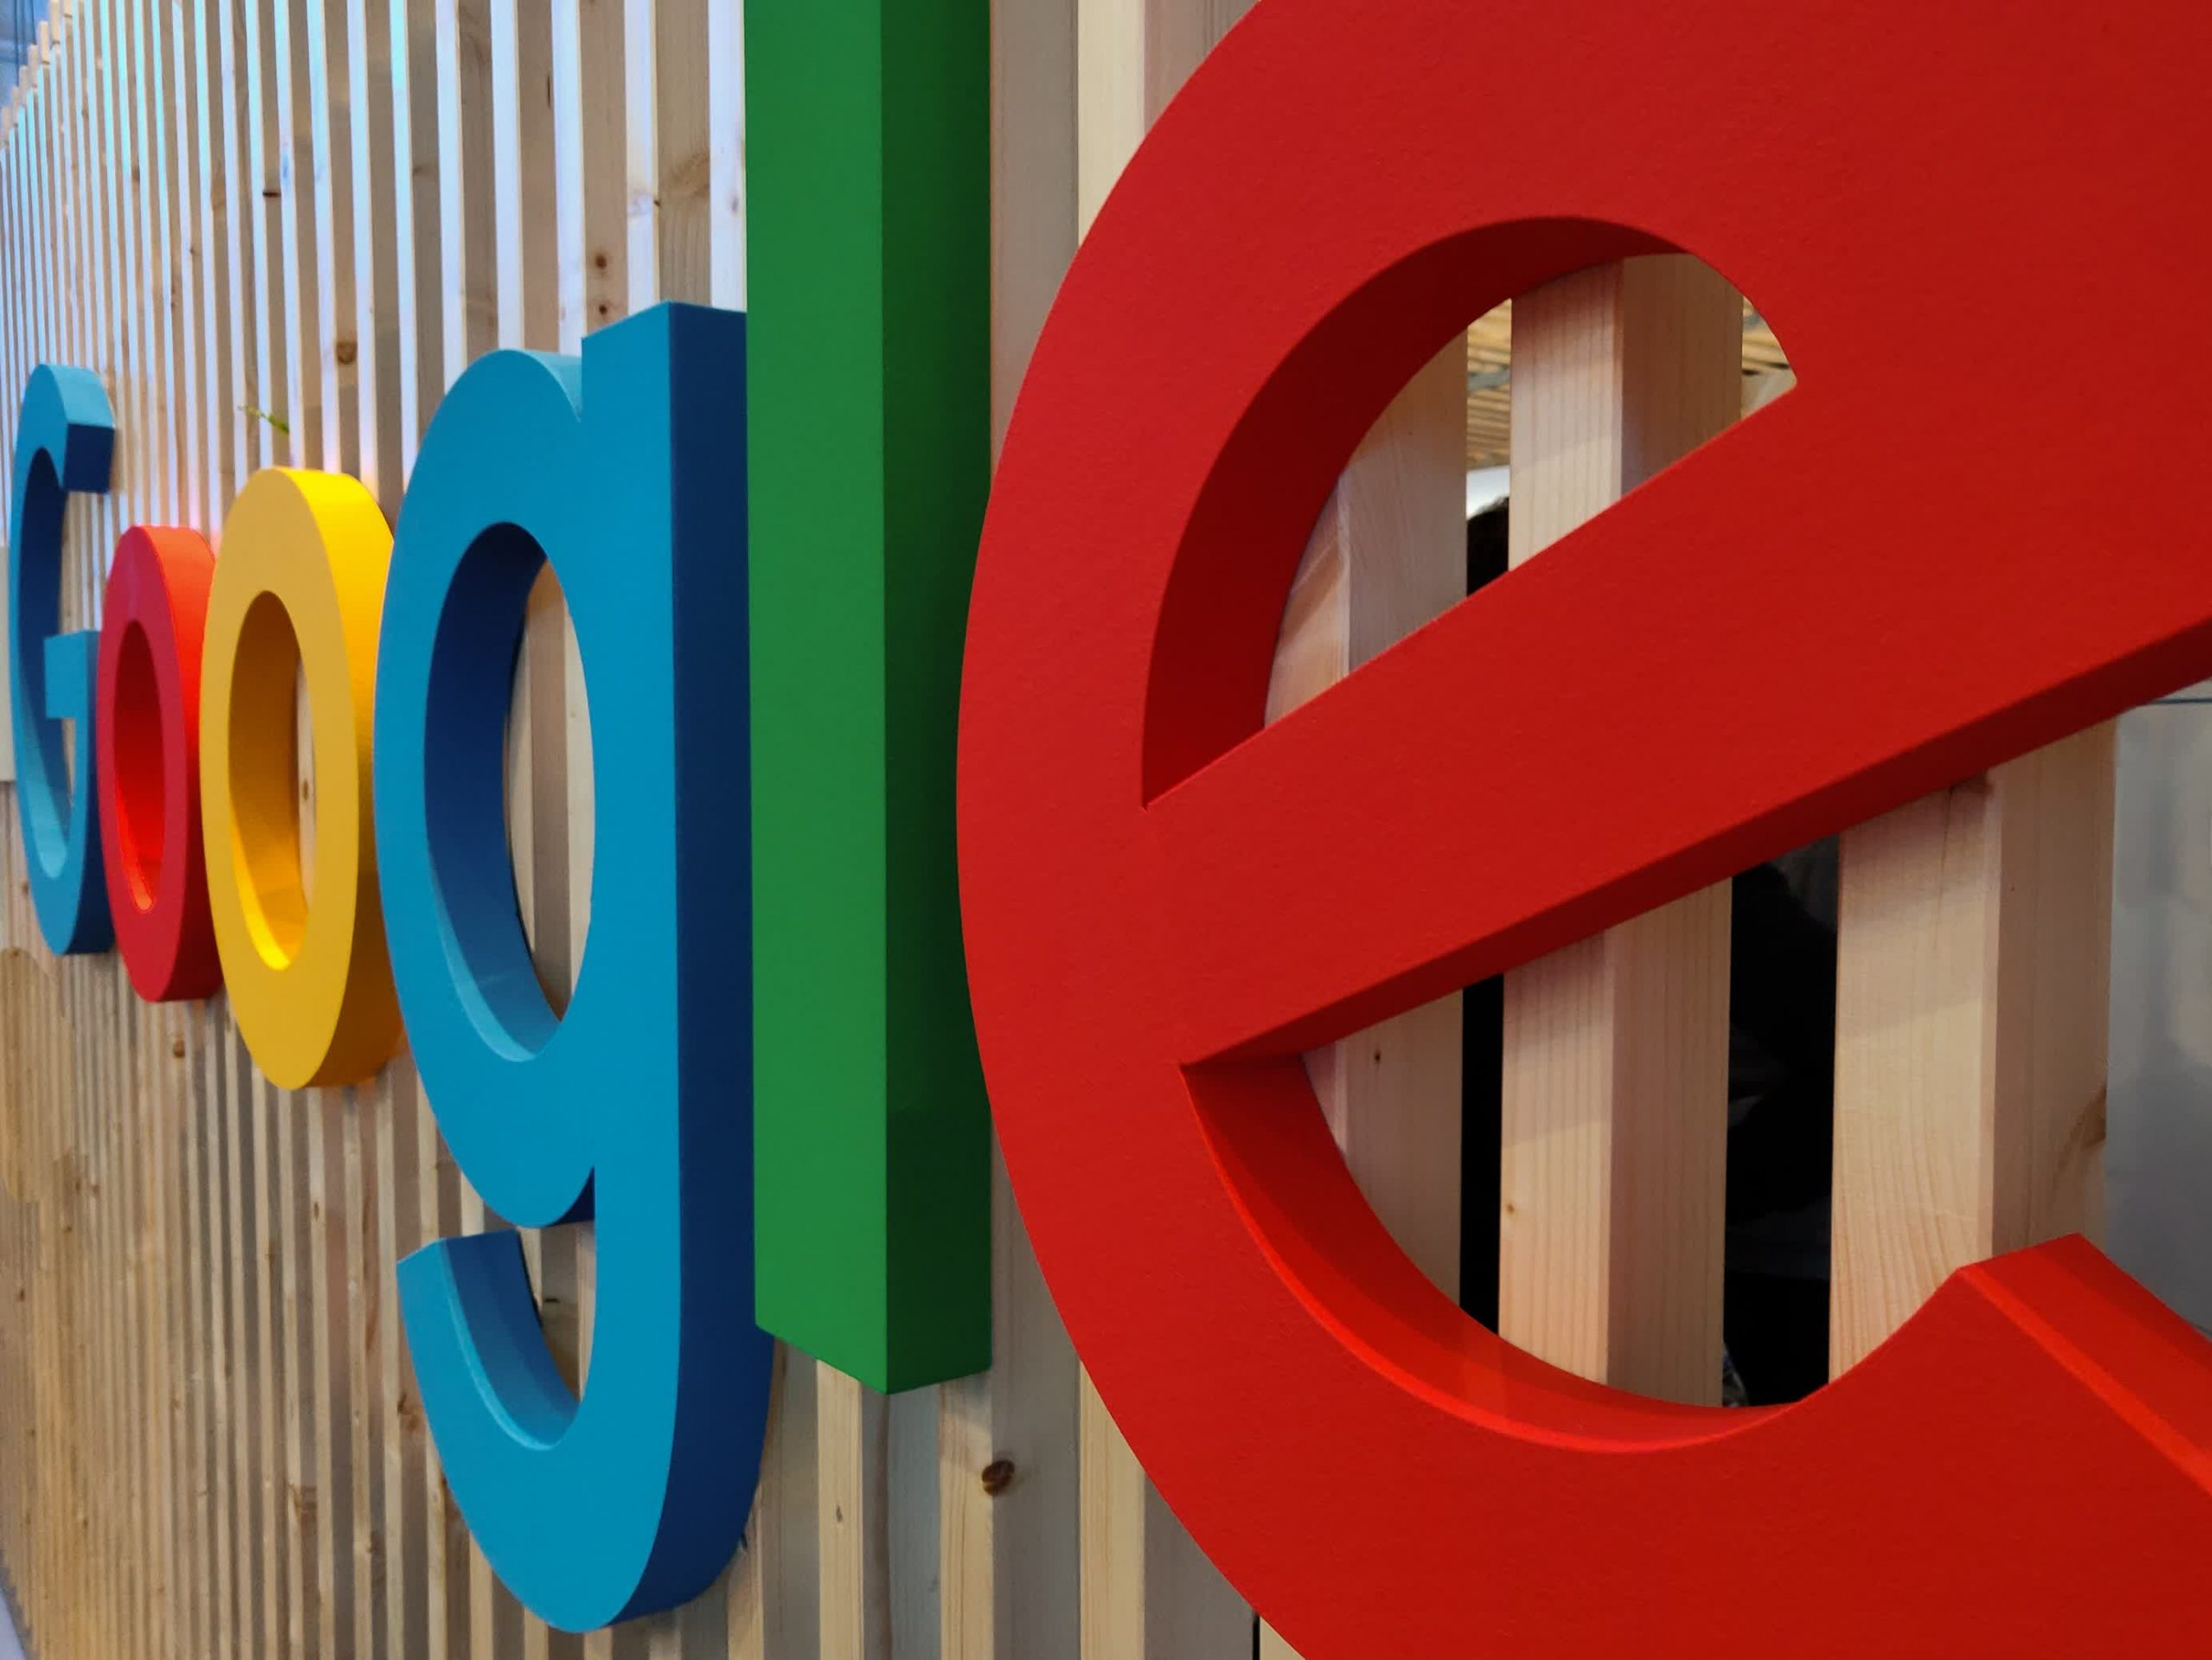 Google accused of illegally spying on workers before firing them